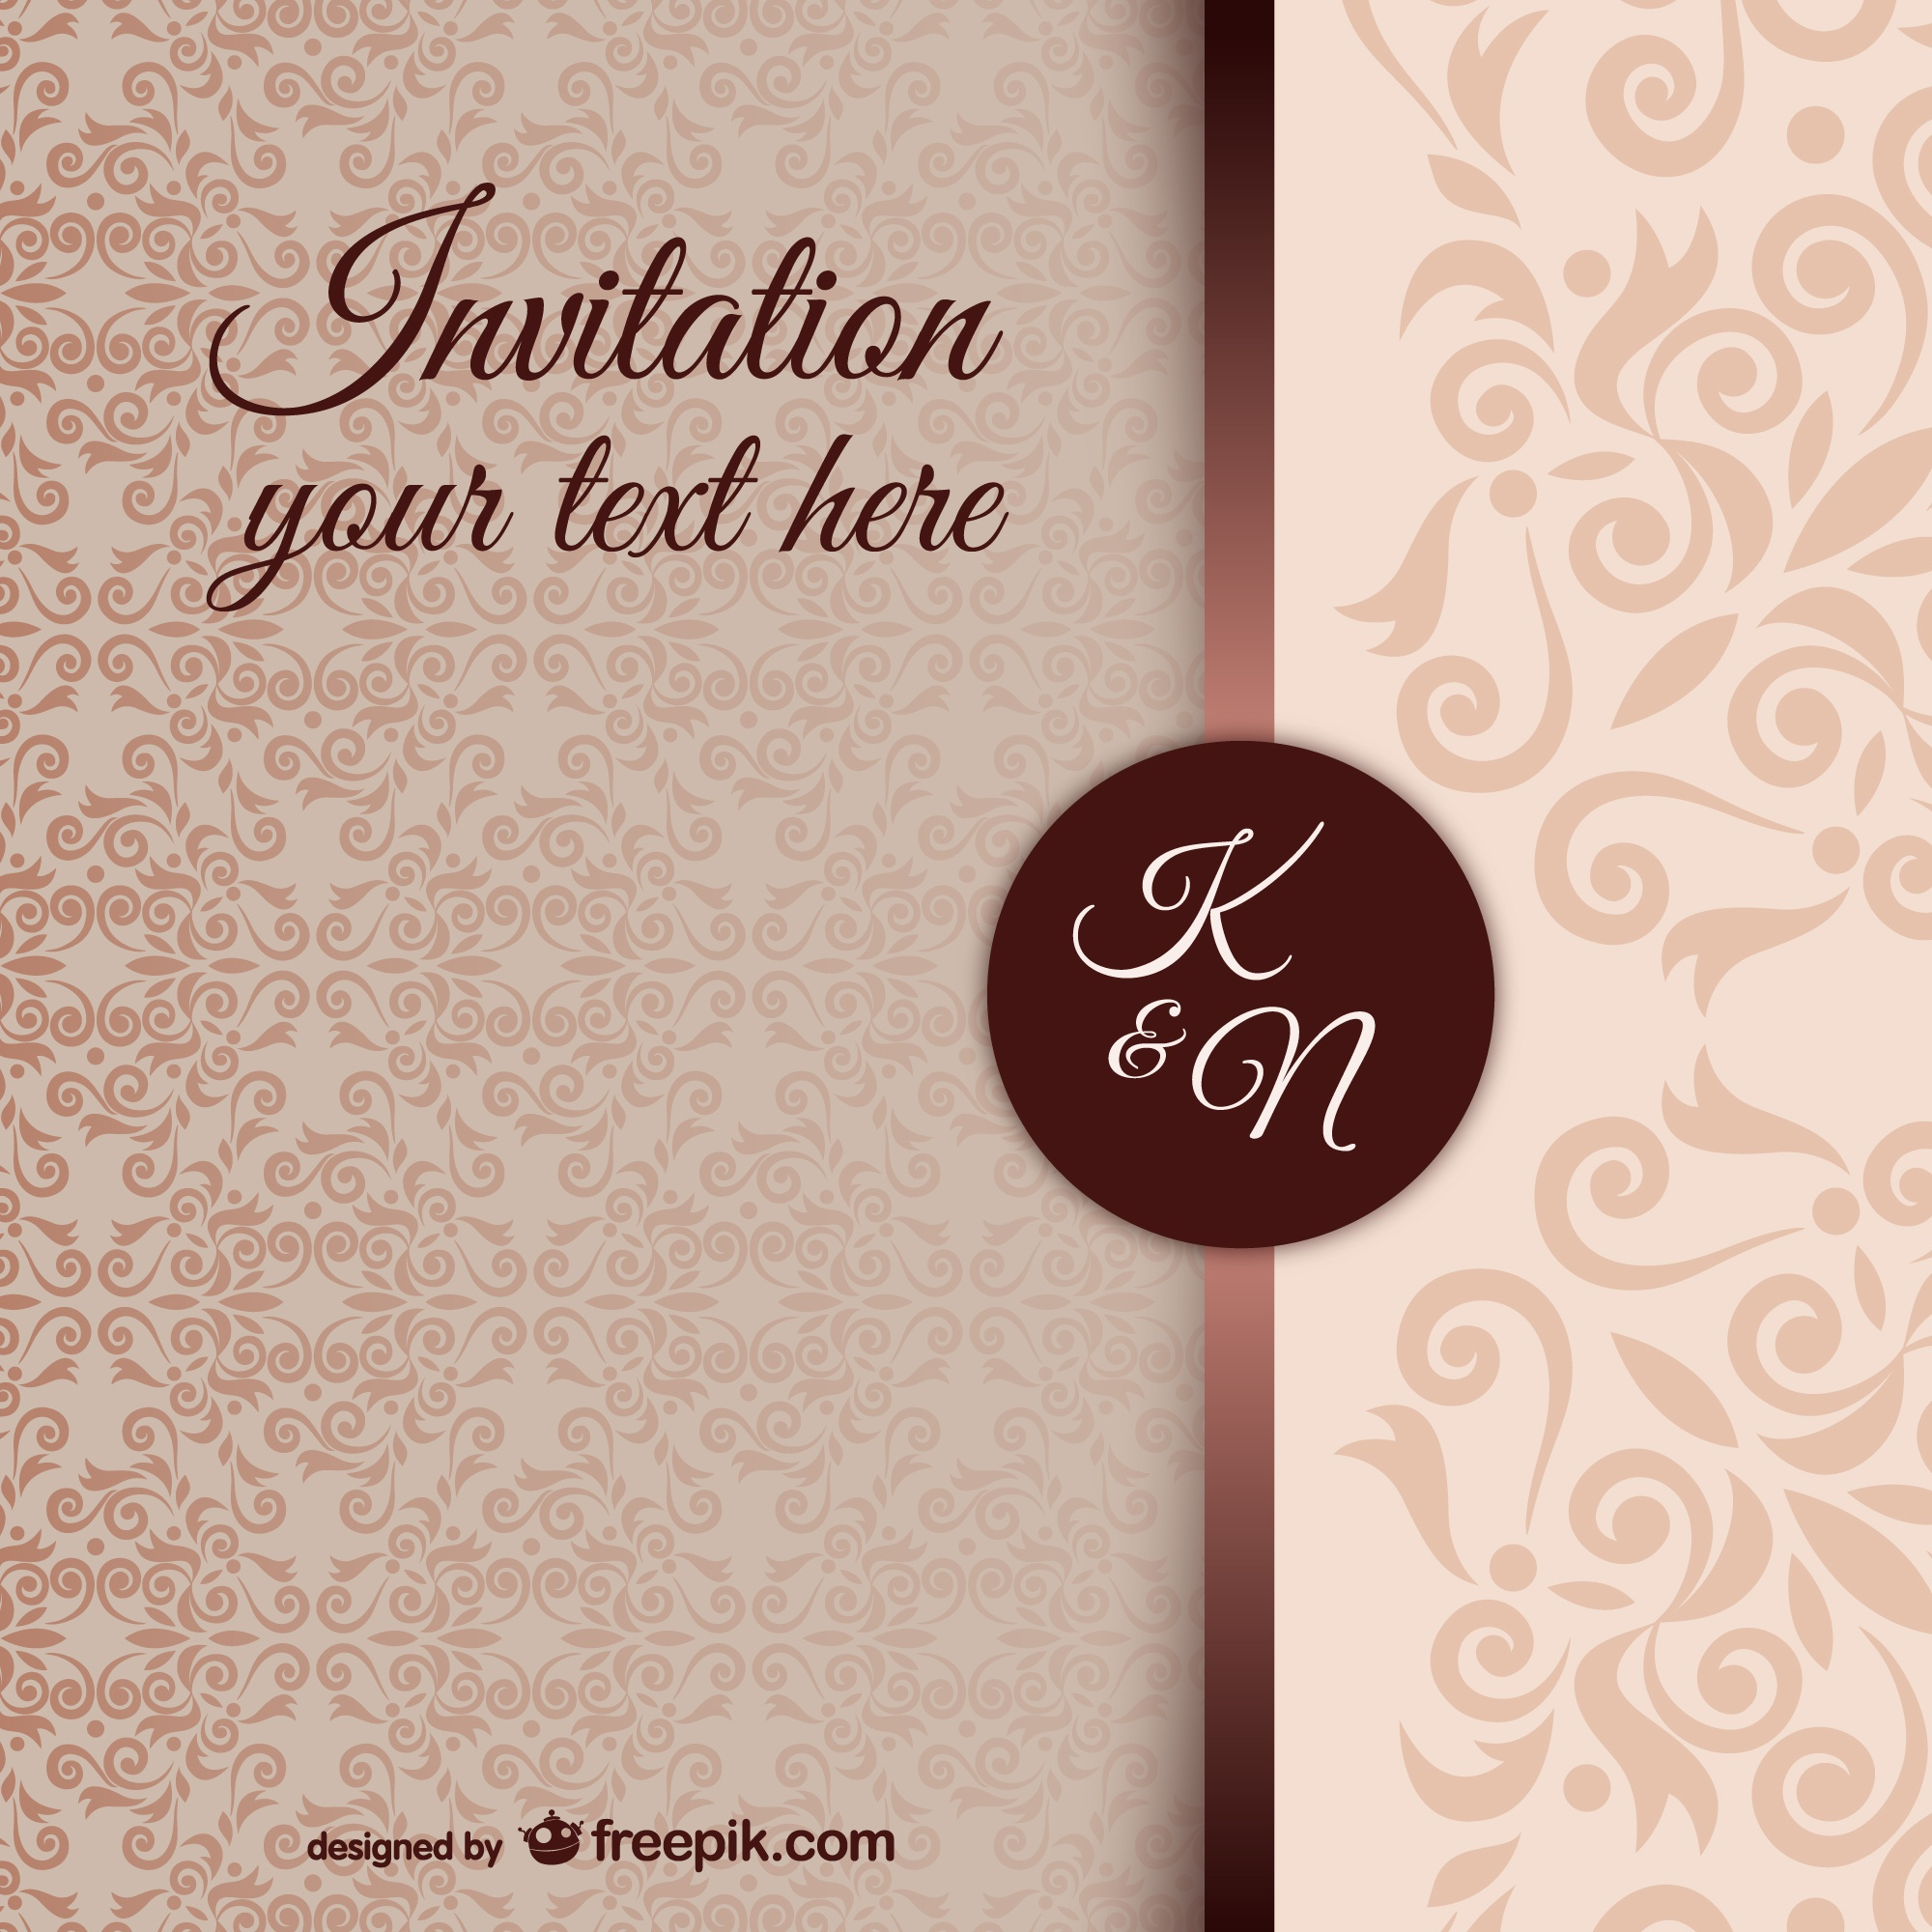 Vintage invitation template with damask pattern